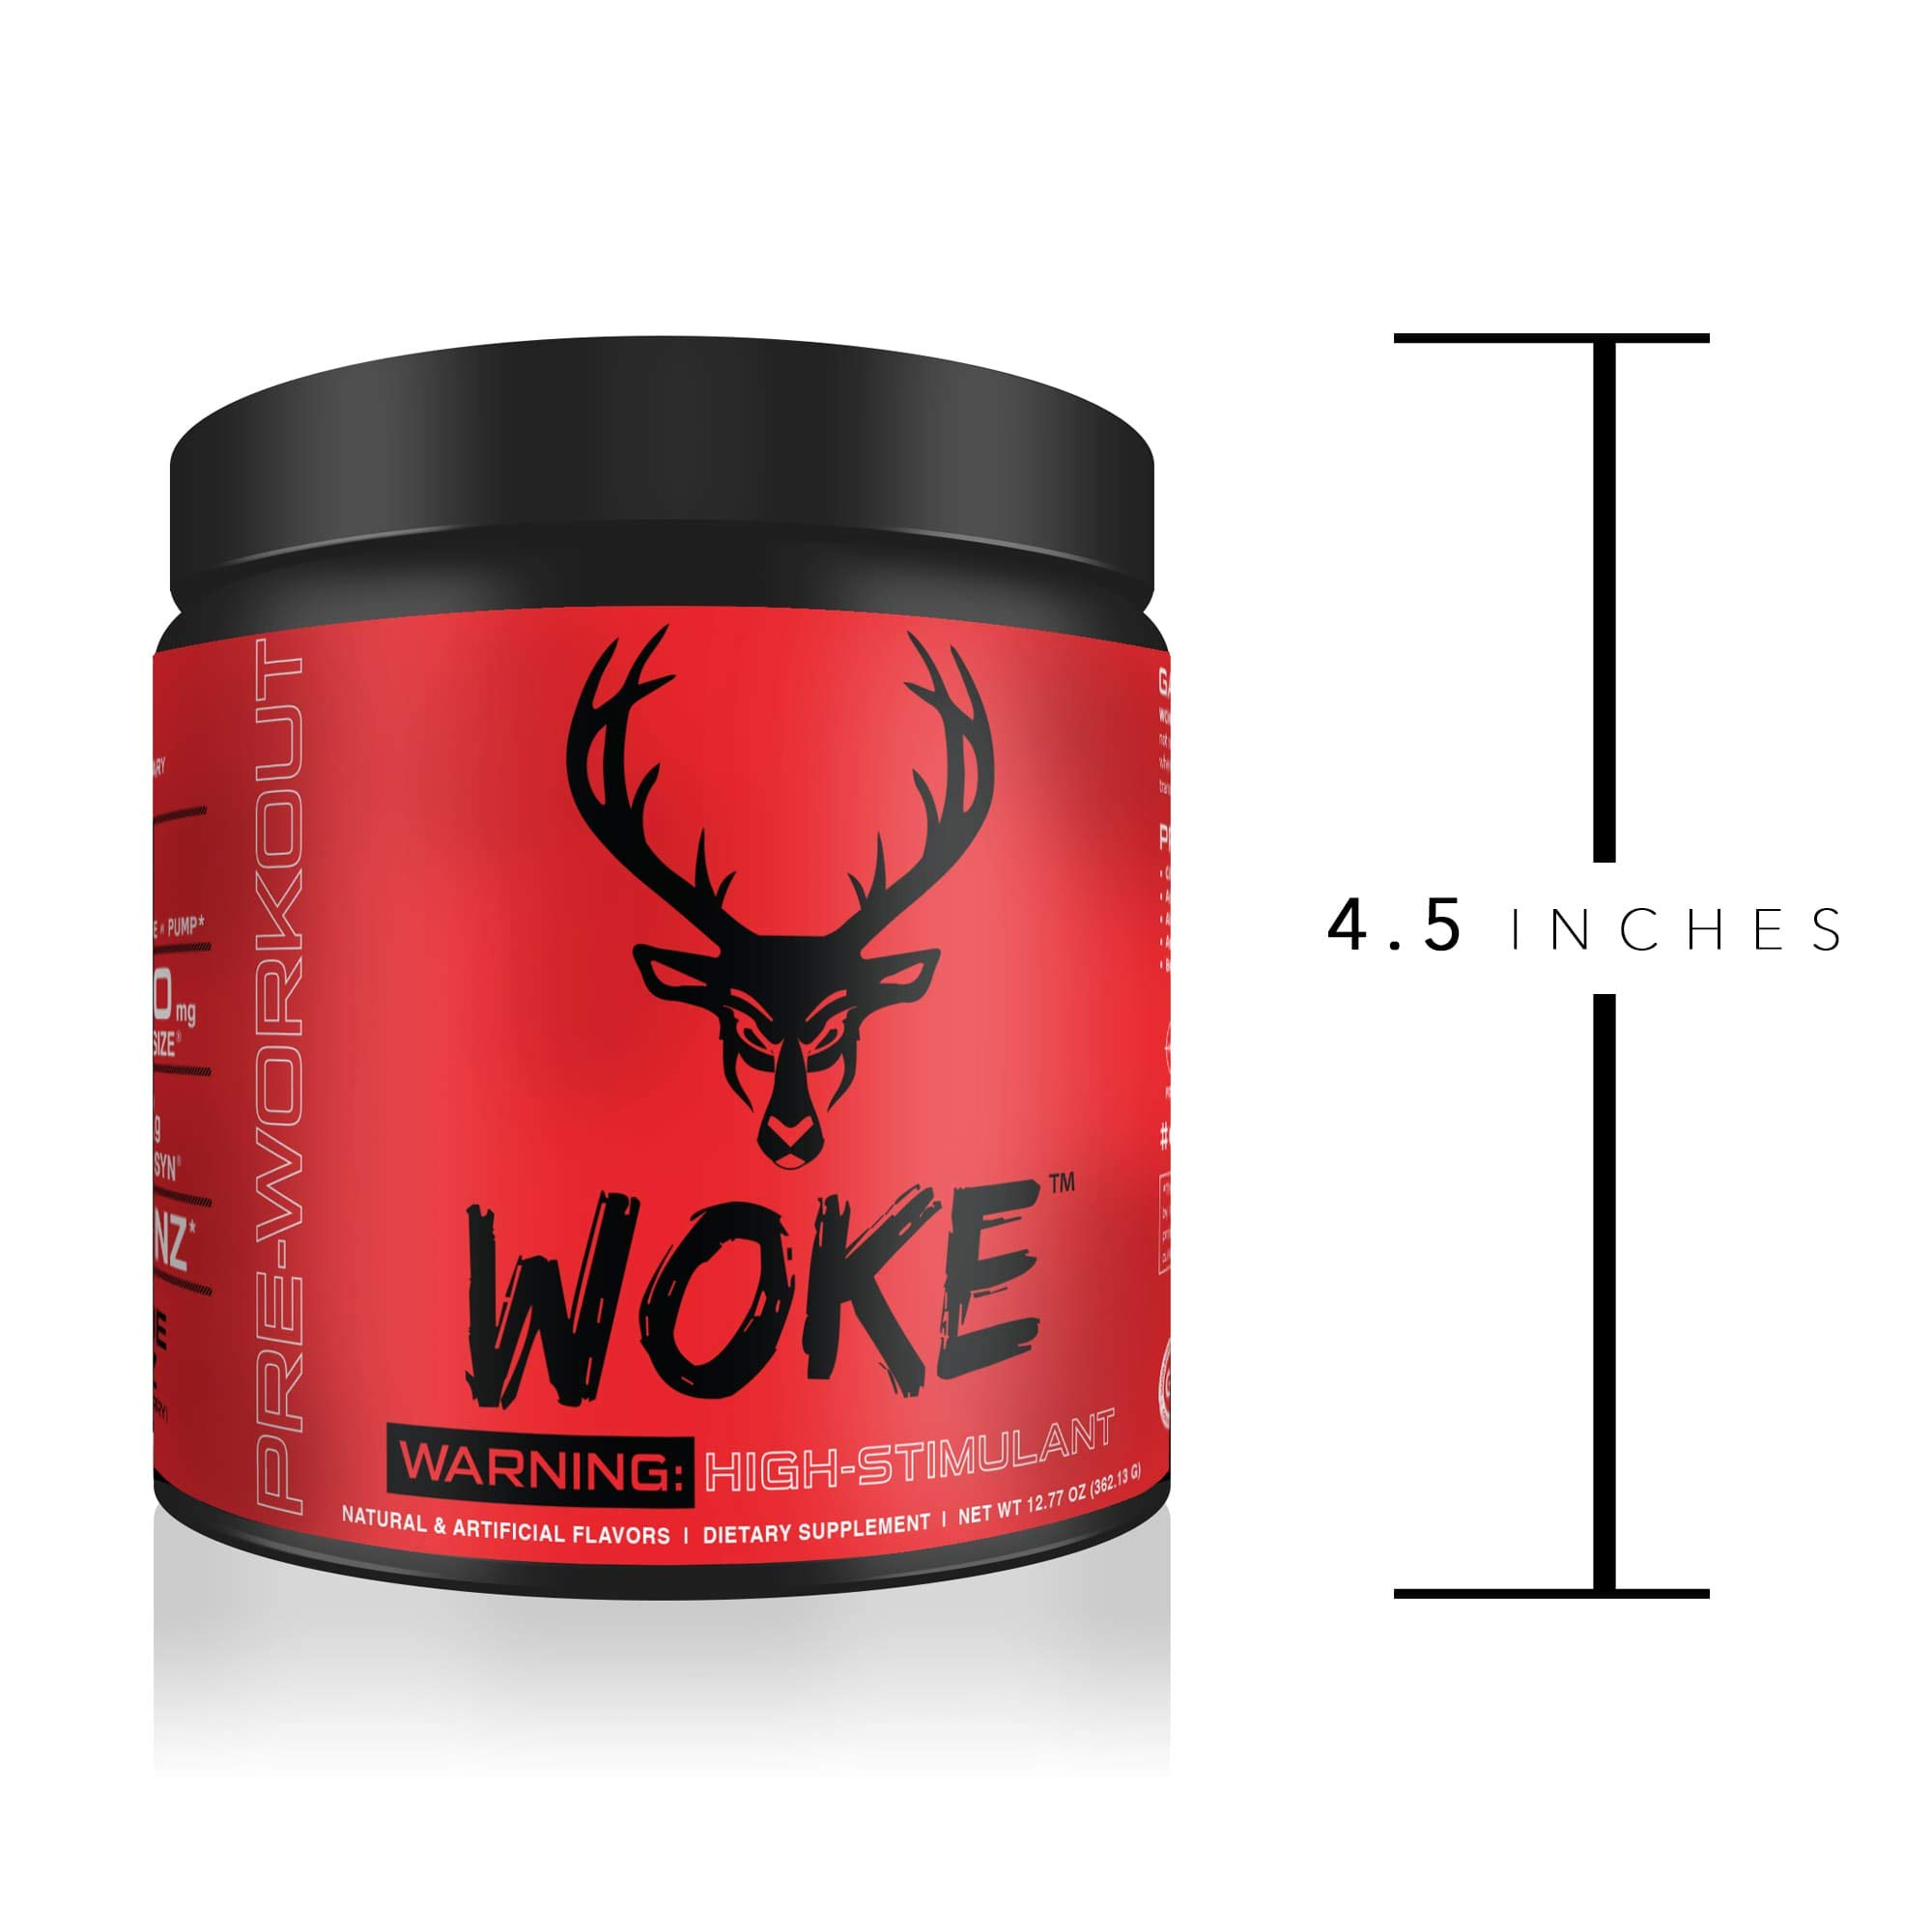 Bucked Up - Woke - HIGH STIM Pre Workout - Best Tasting - Focus Nootropic, Pump, Strength and Growth, 30 Servings (Blood Raz) by BUCKED UP (Image #8)